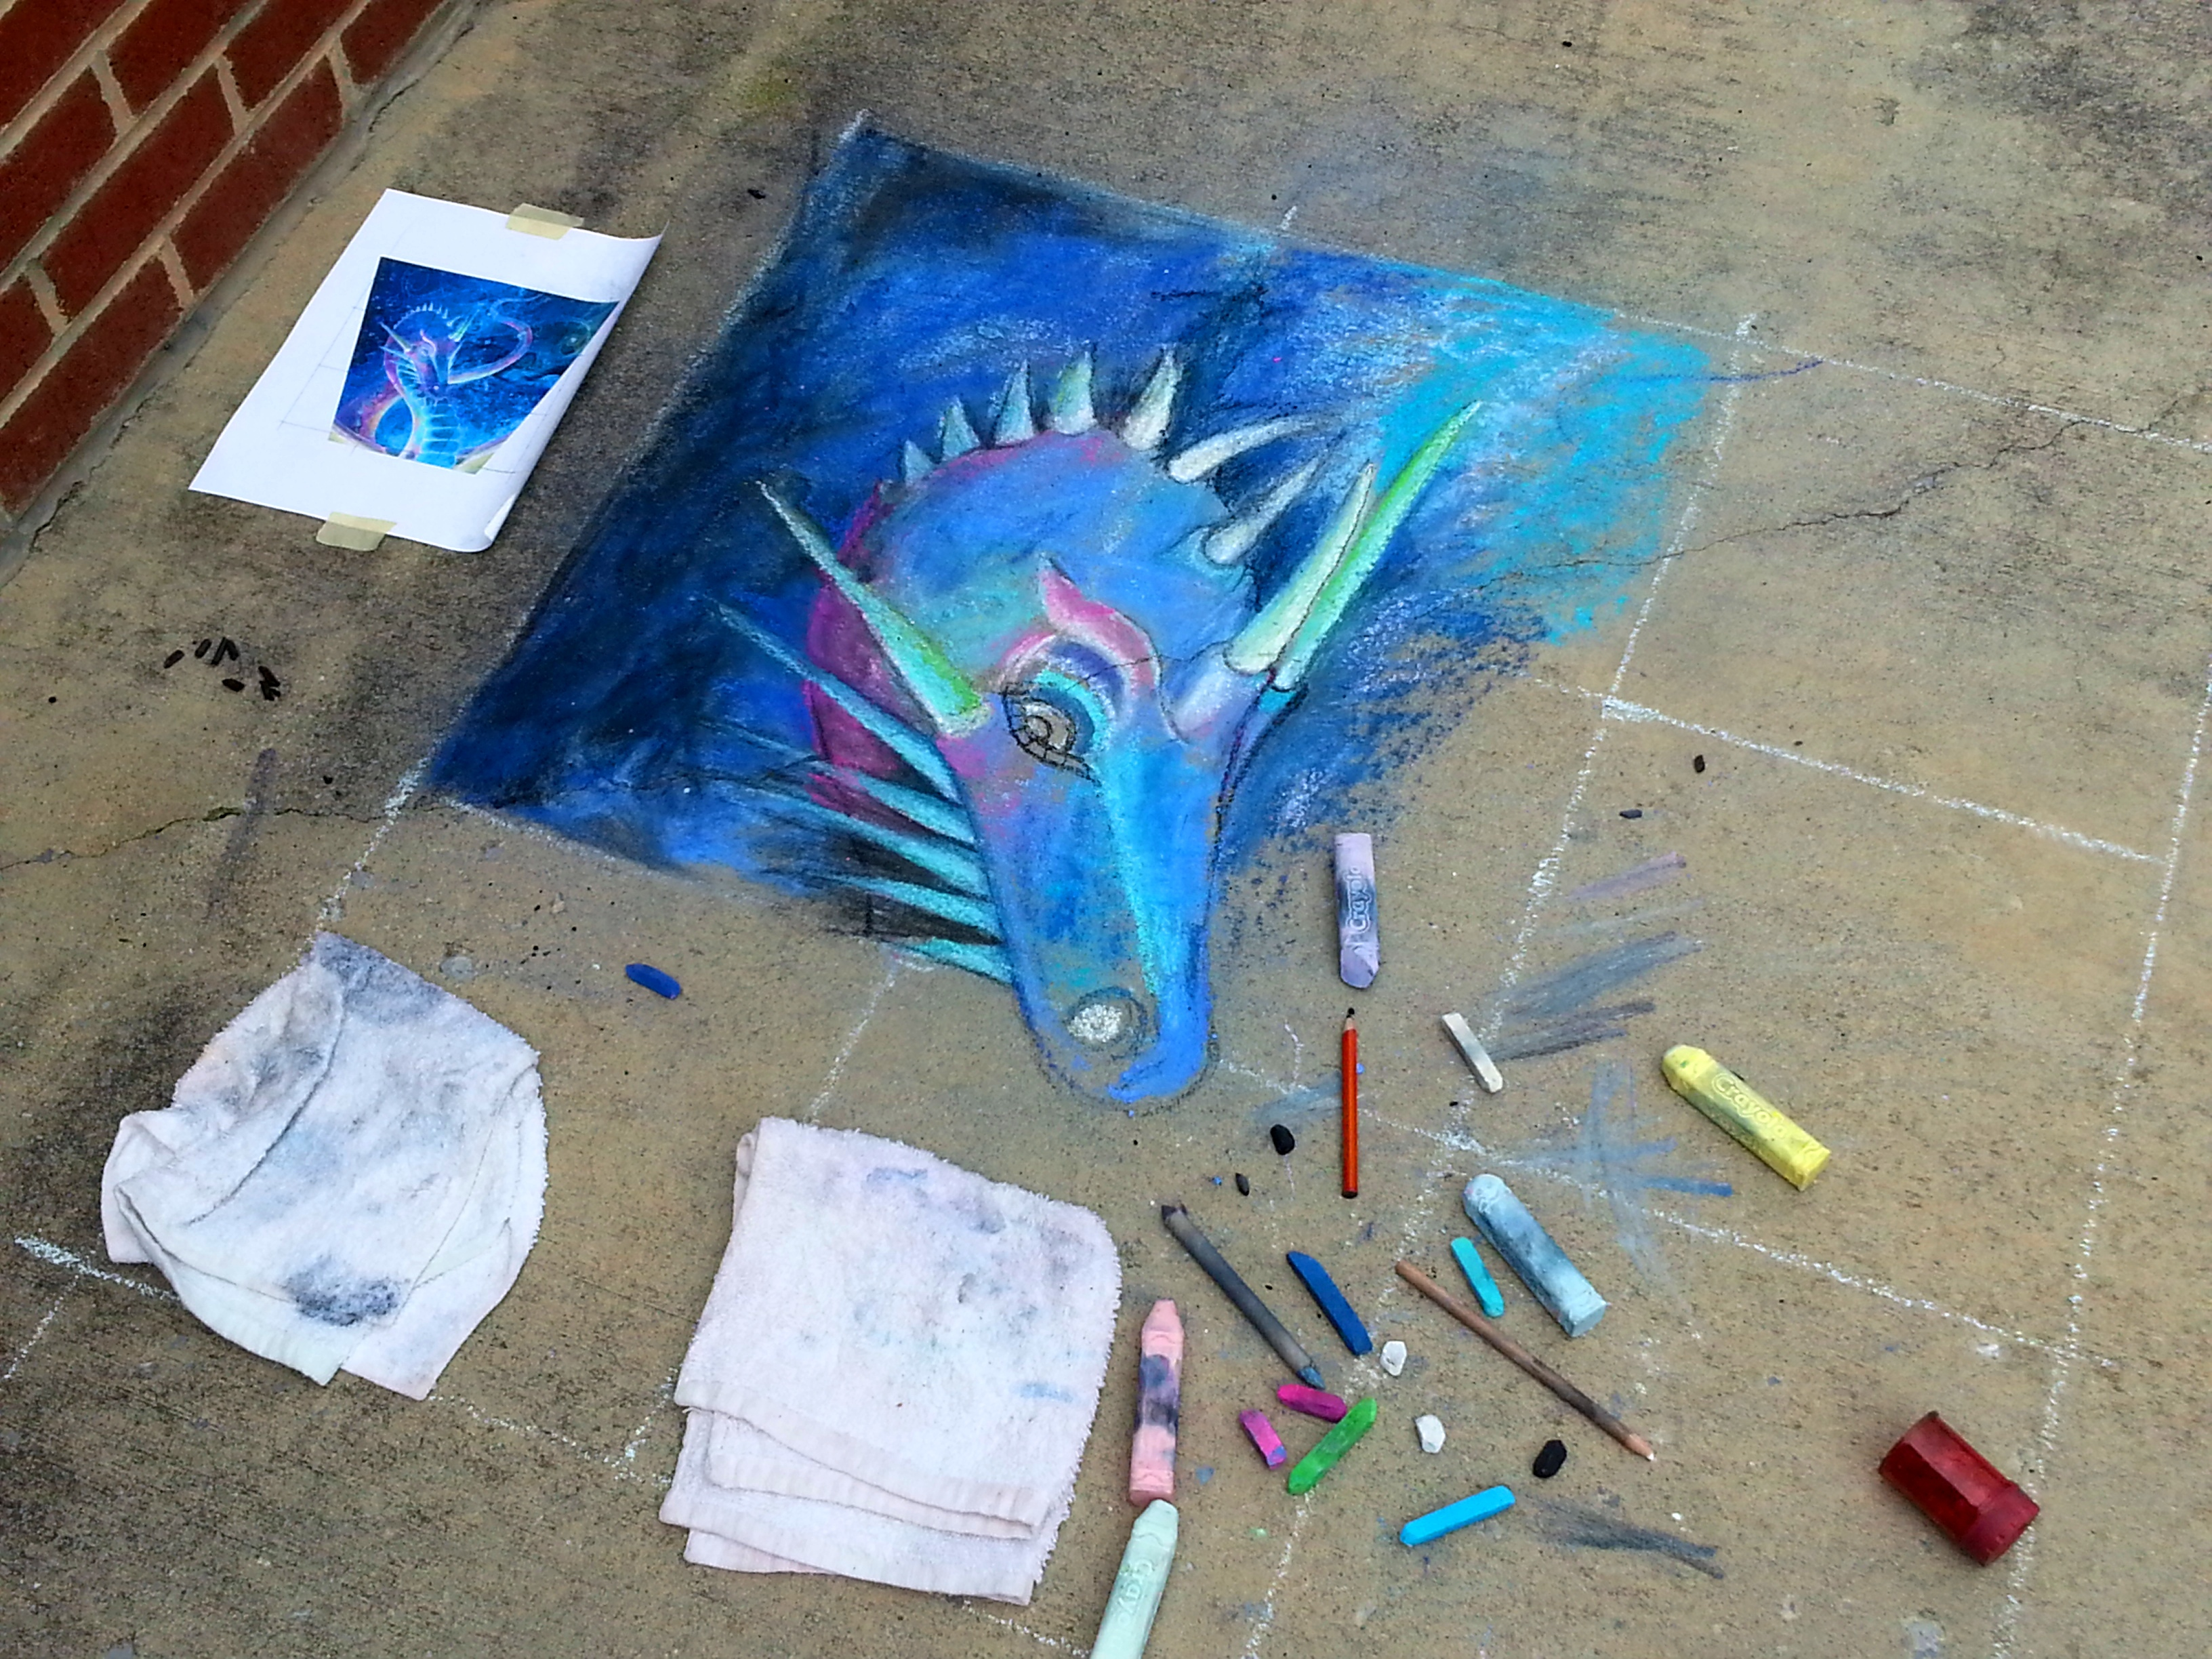 Ladonna's Chalk Dragon1